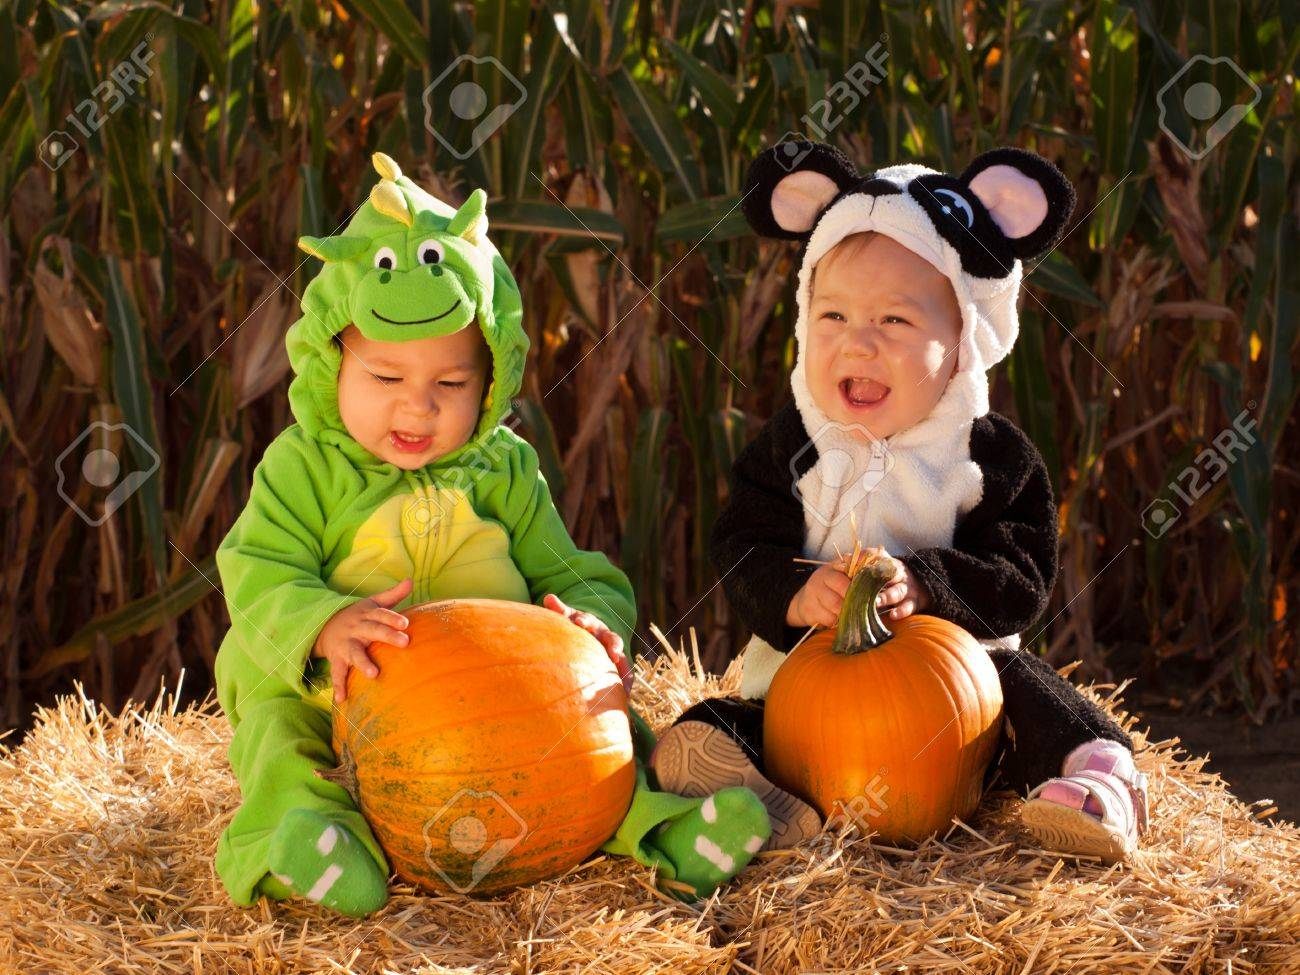 Toddlers dressed up in cute costumes at the pumpkin patch. Stock Photo - 10807056